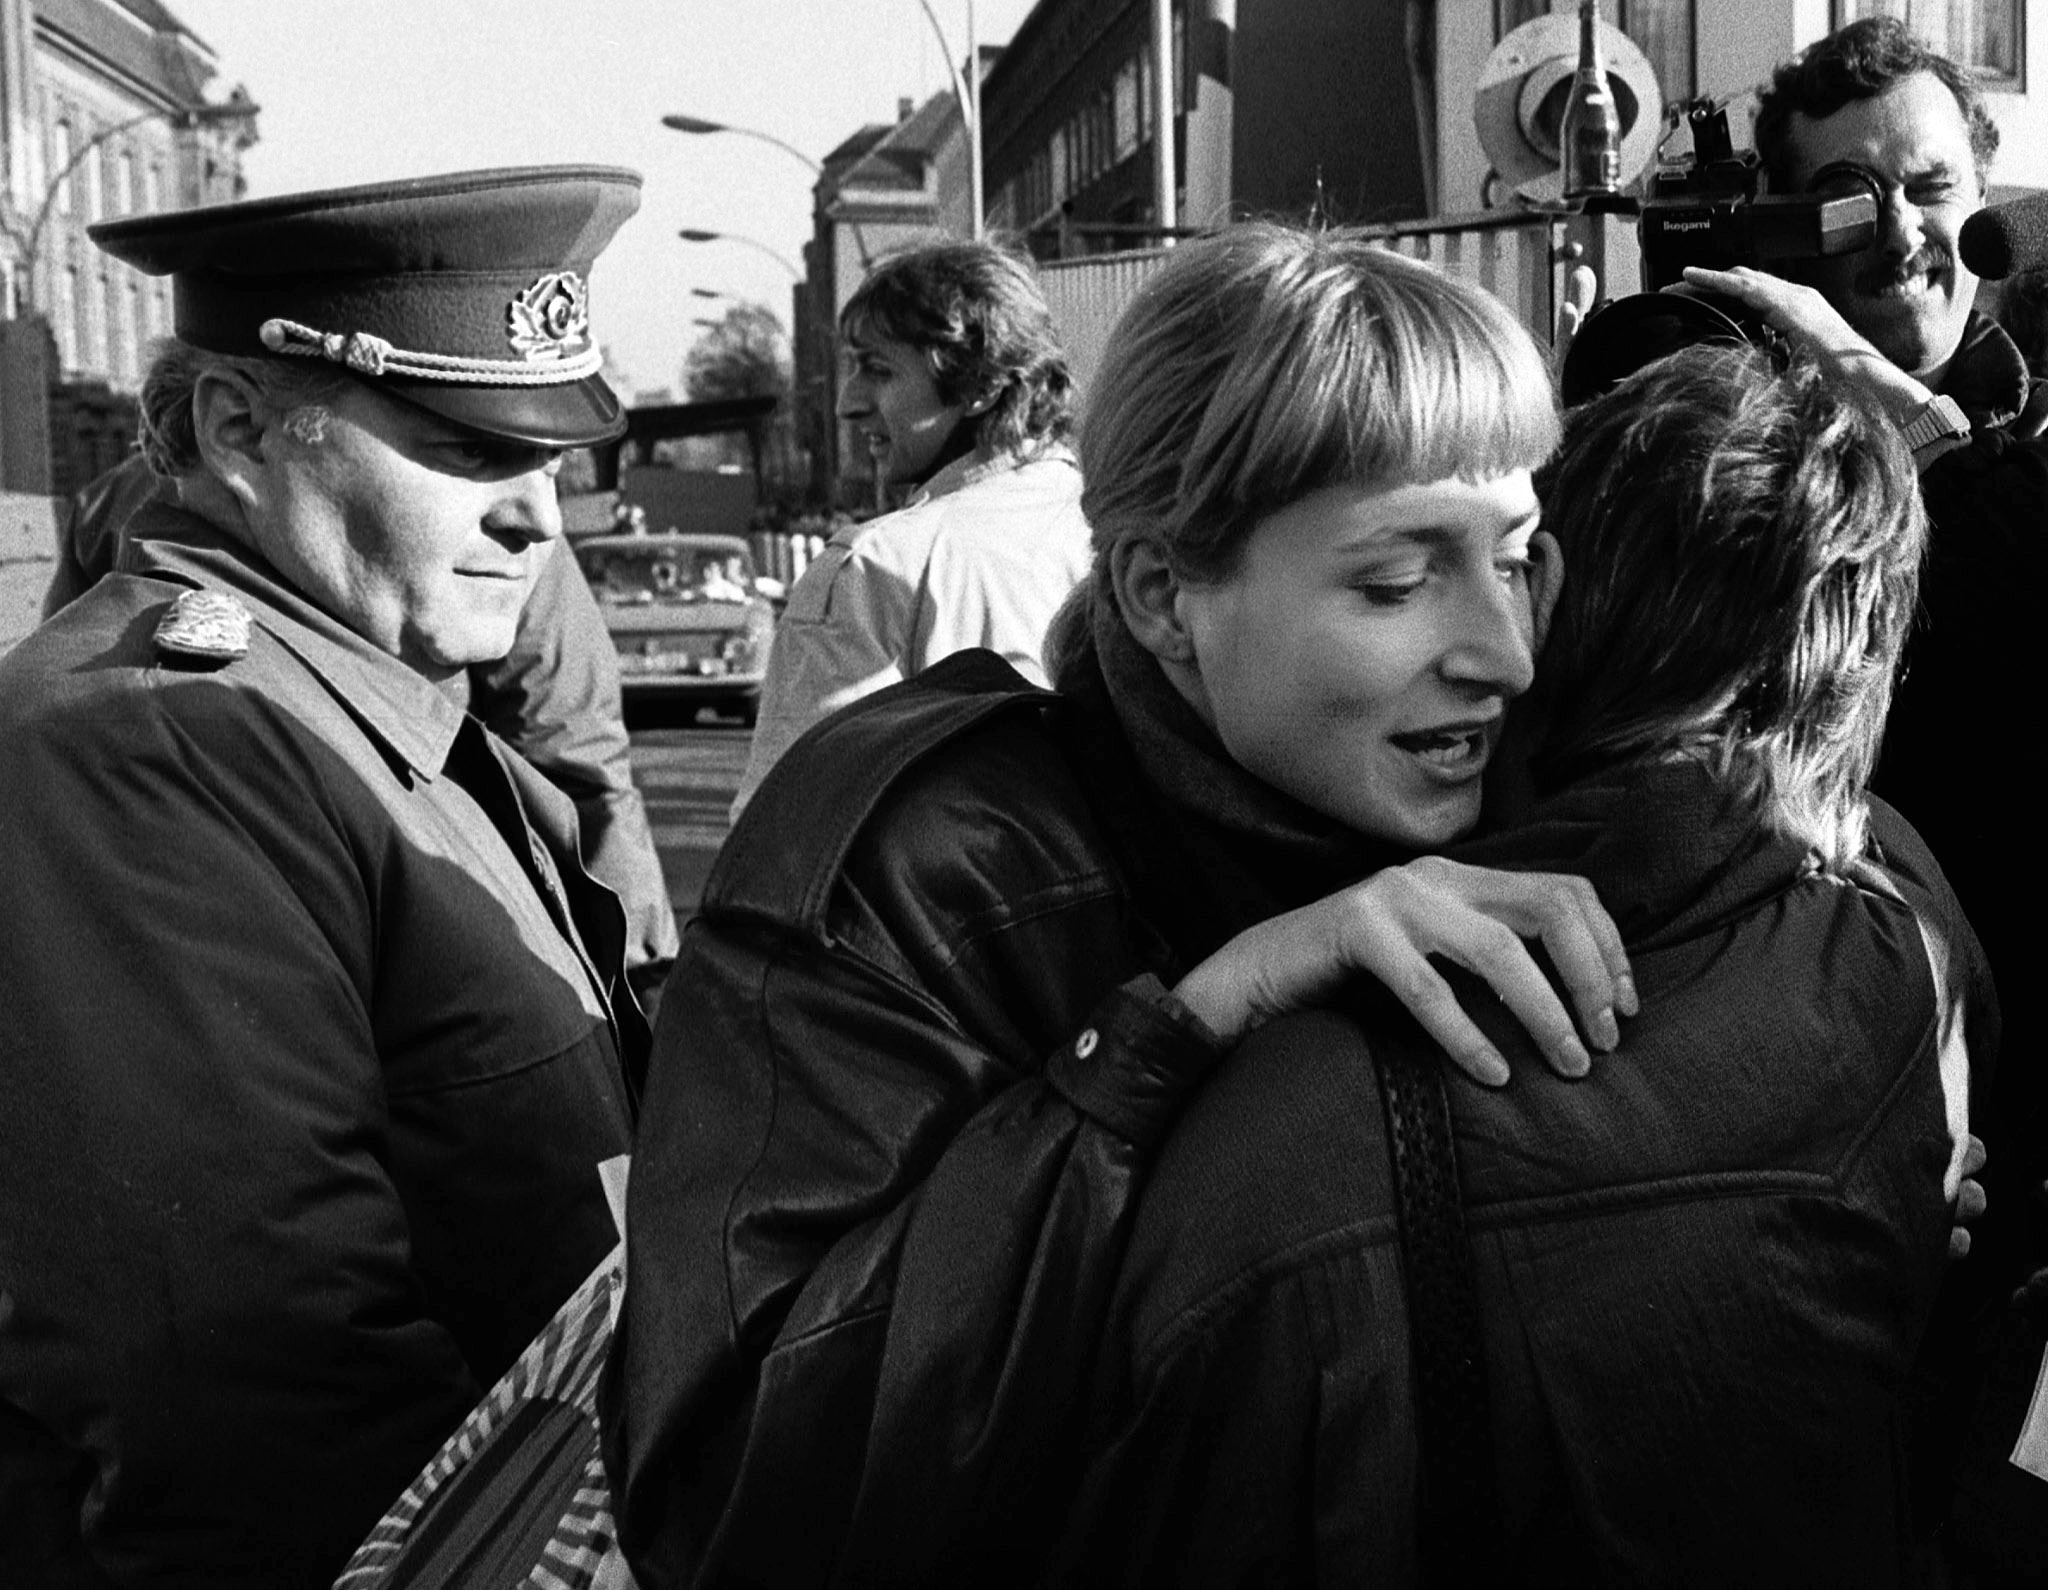 An East Berliner and a West Berliner embrace while a border soldier looks on, November 10, 1989. (Reuters)